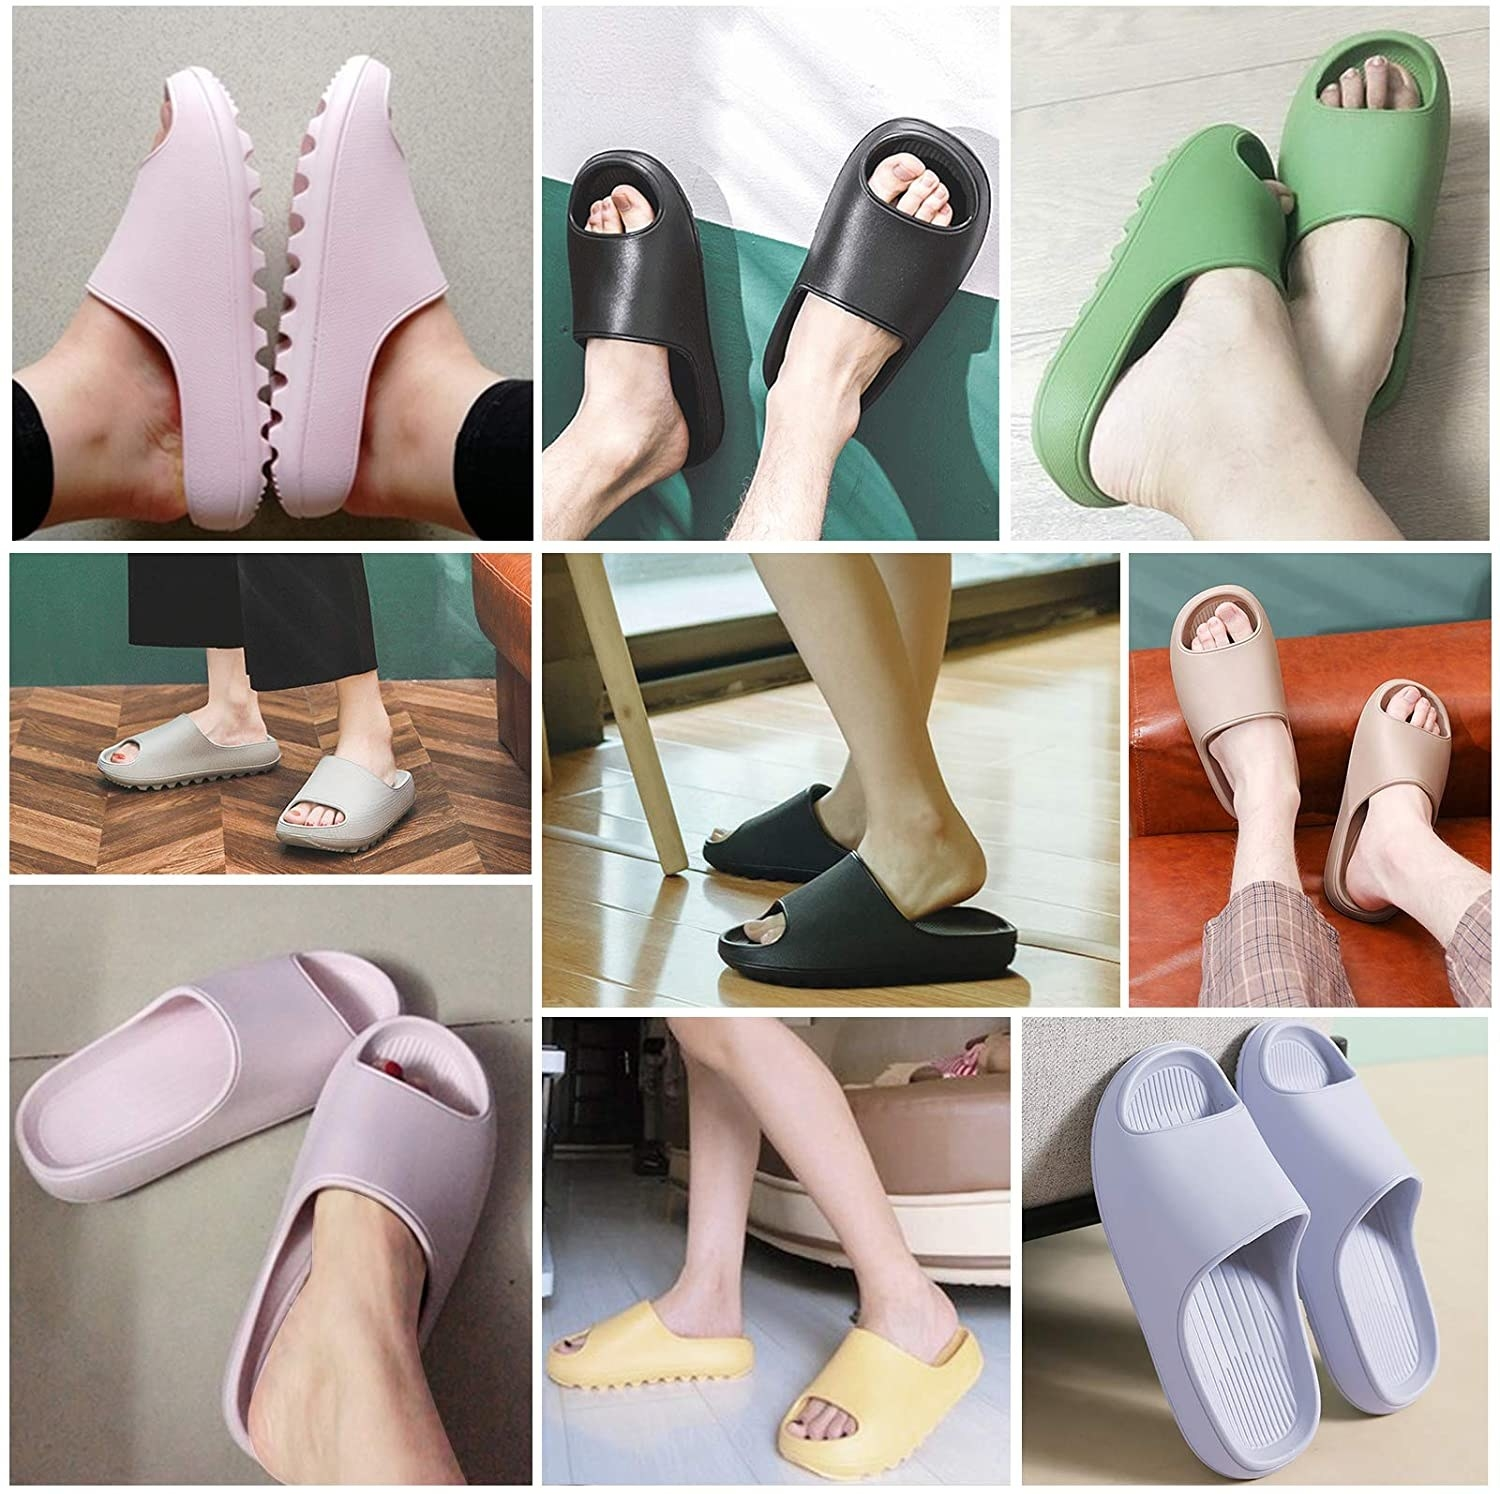 the slides in various pastel and neutral colors